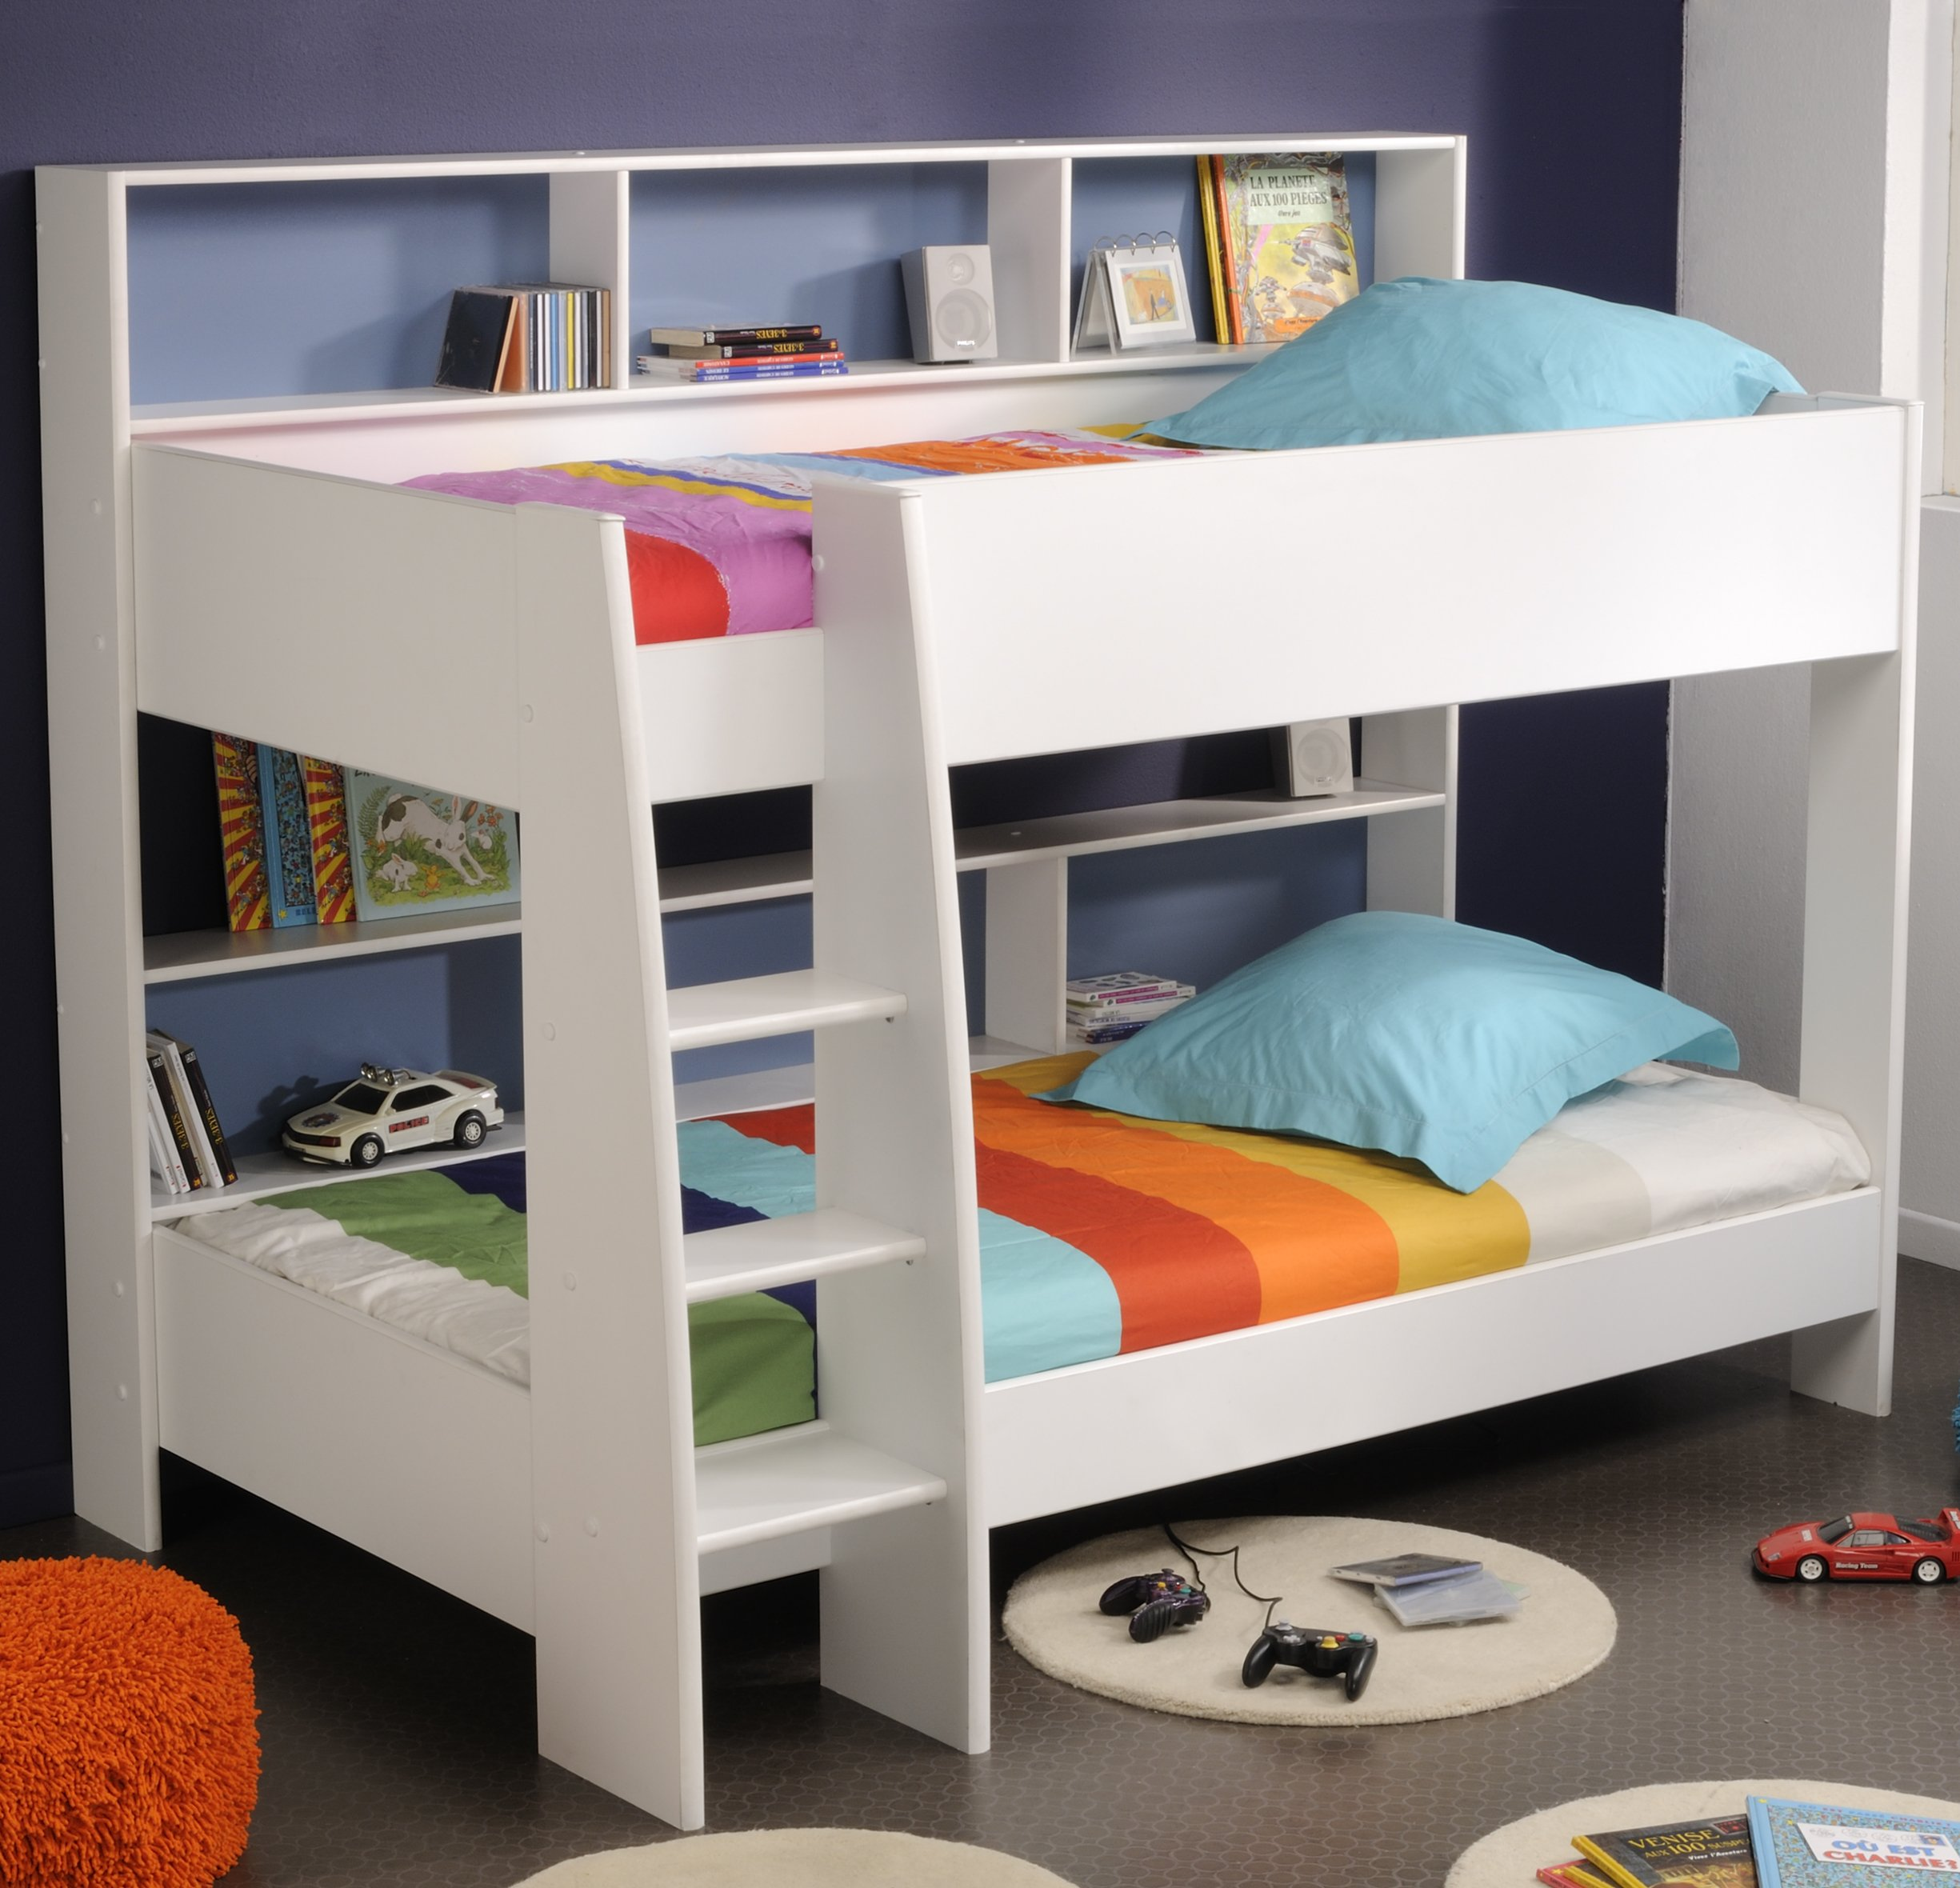 Incredible Style and Modern Bunk Beds for Kids Bedroom: Best Bunk Beds For Small Rooms | Modern Bunk Beds | Contemporary Twin Bed